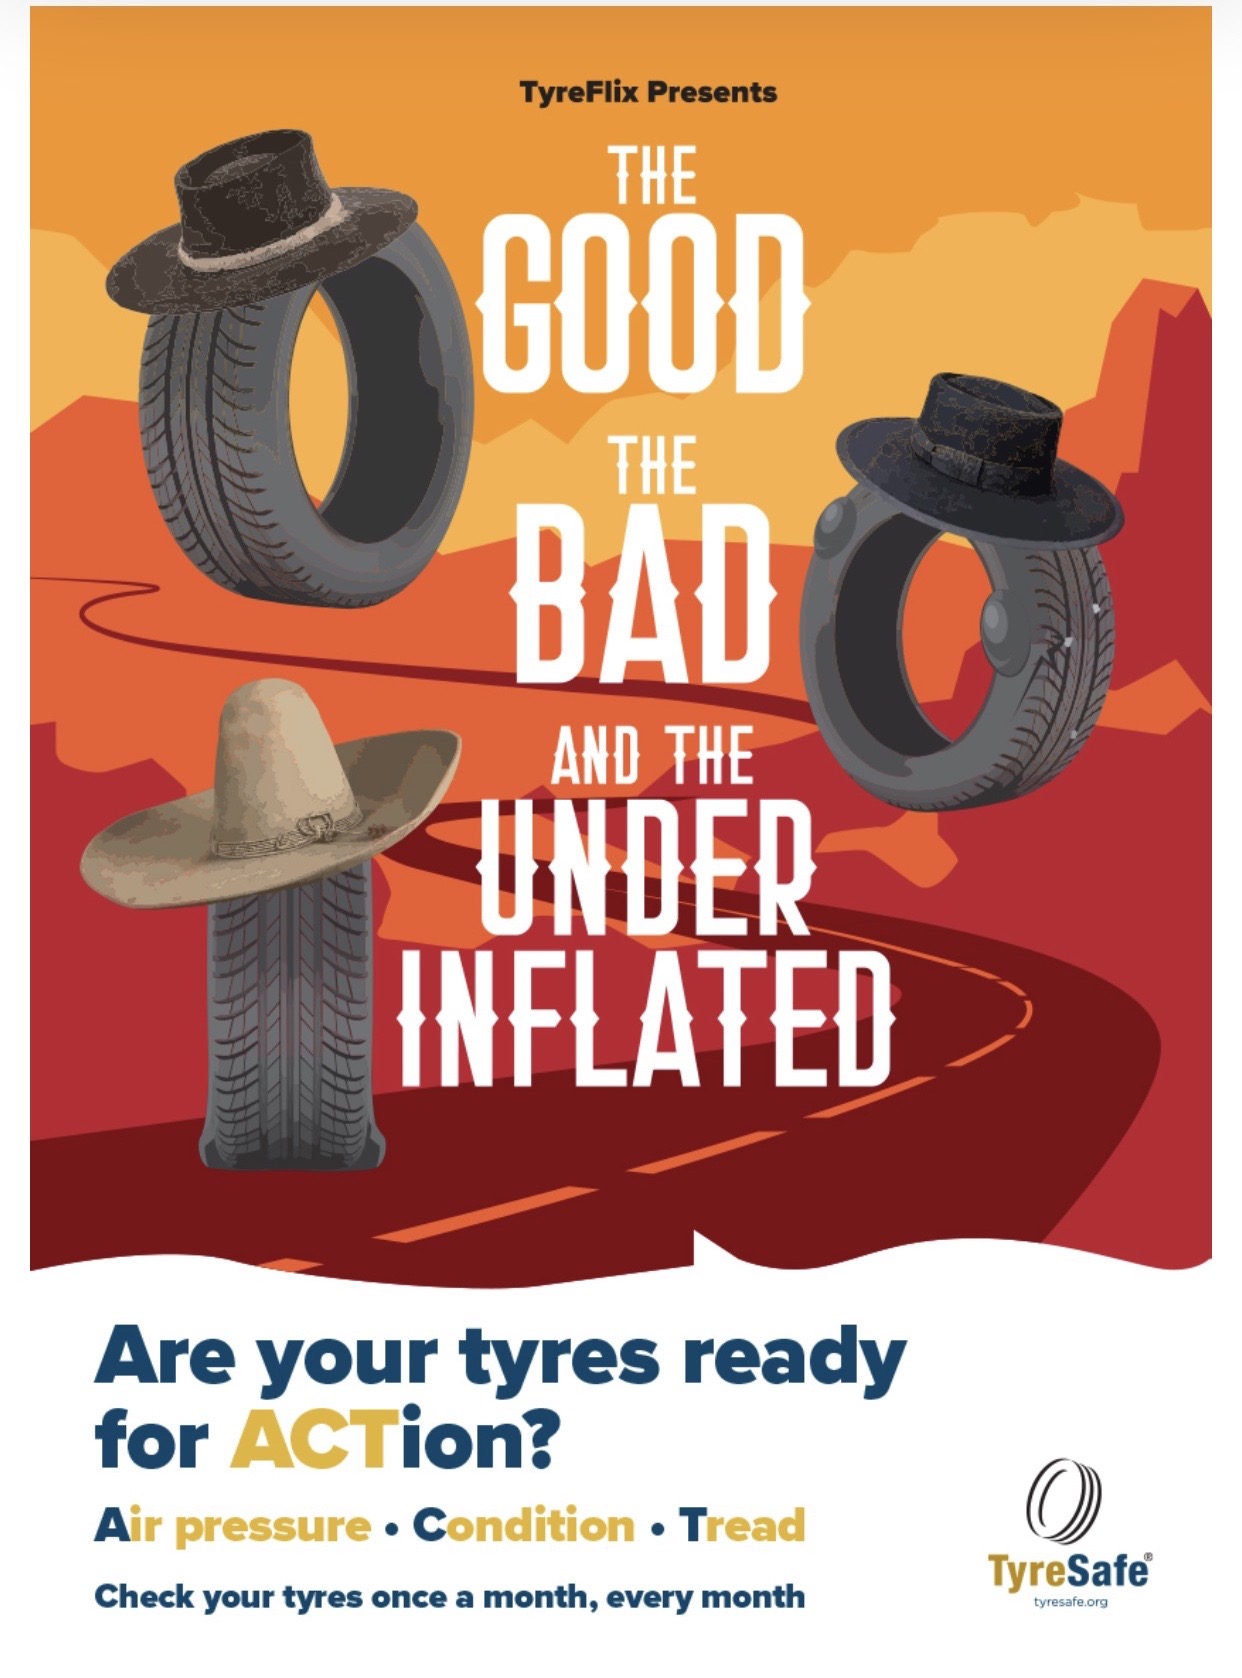 October is tyre safety month, please boo